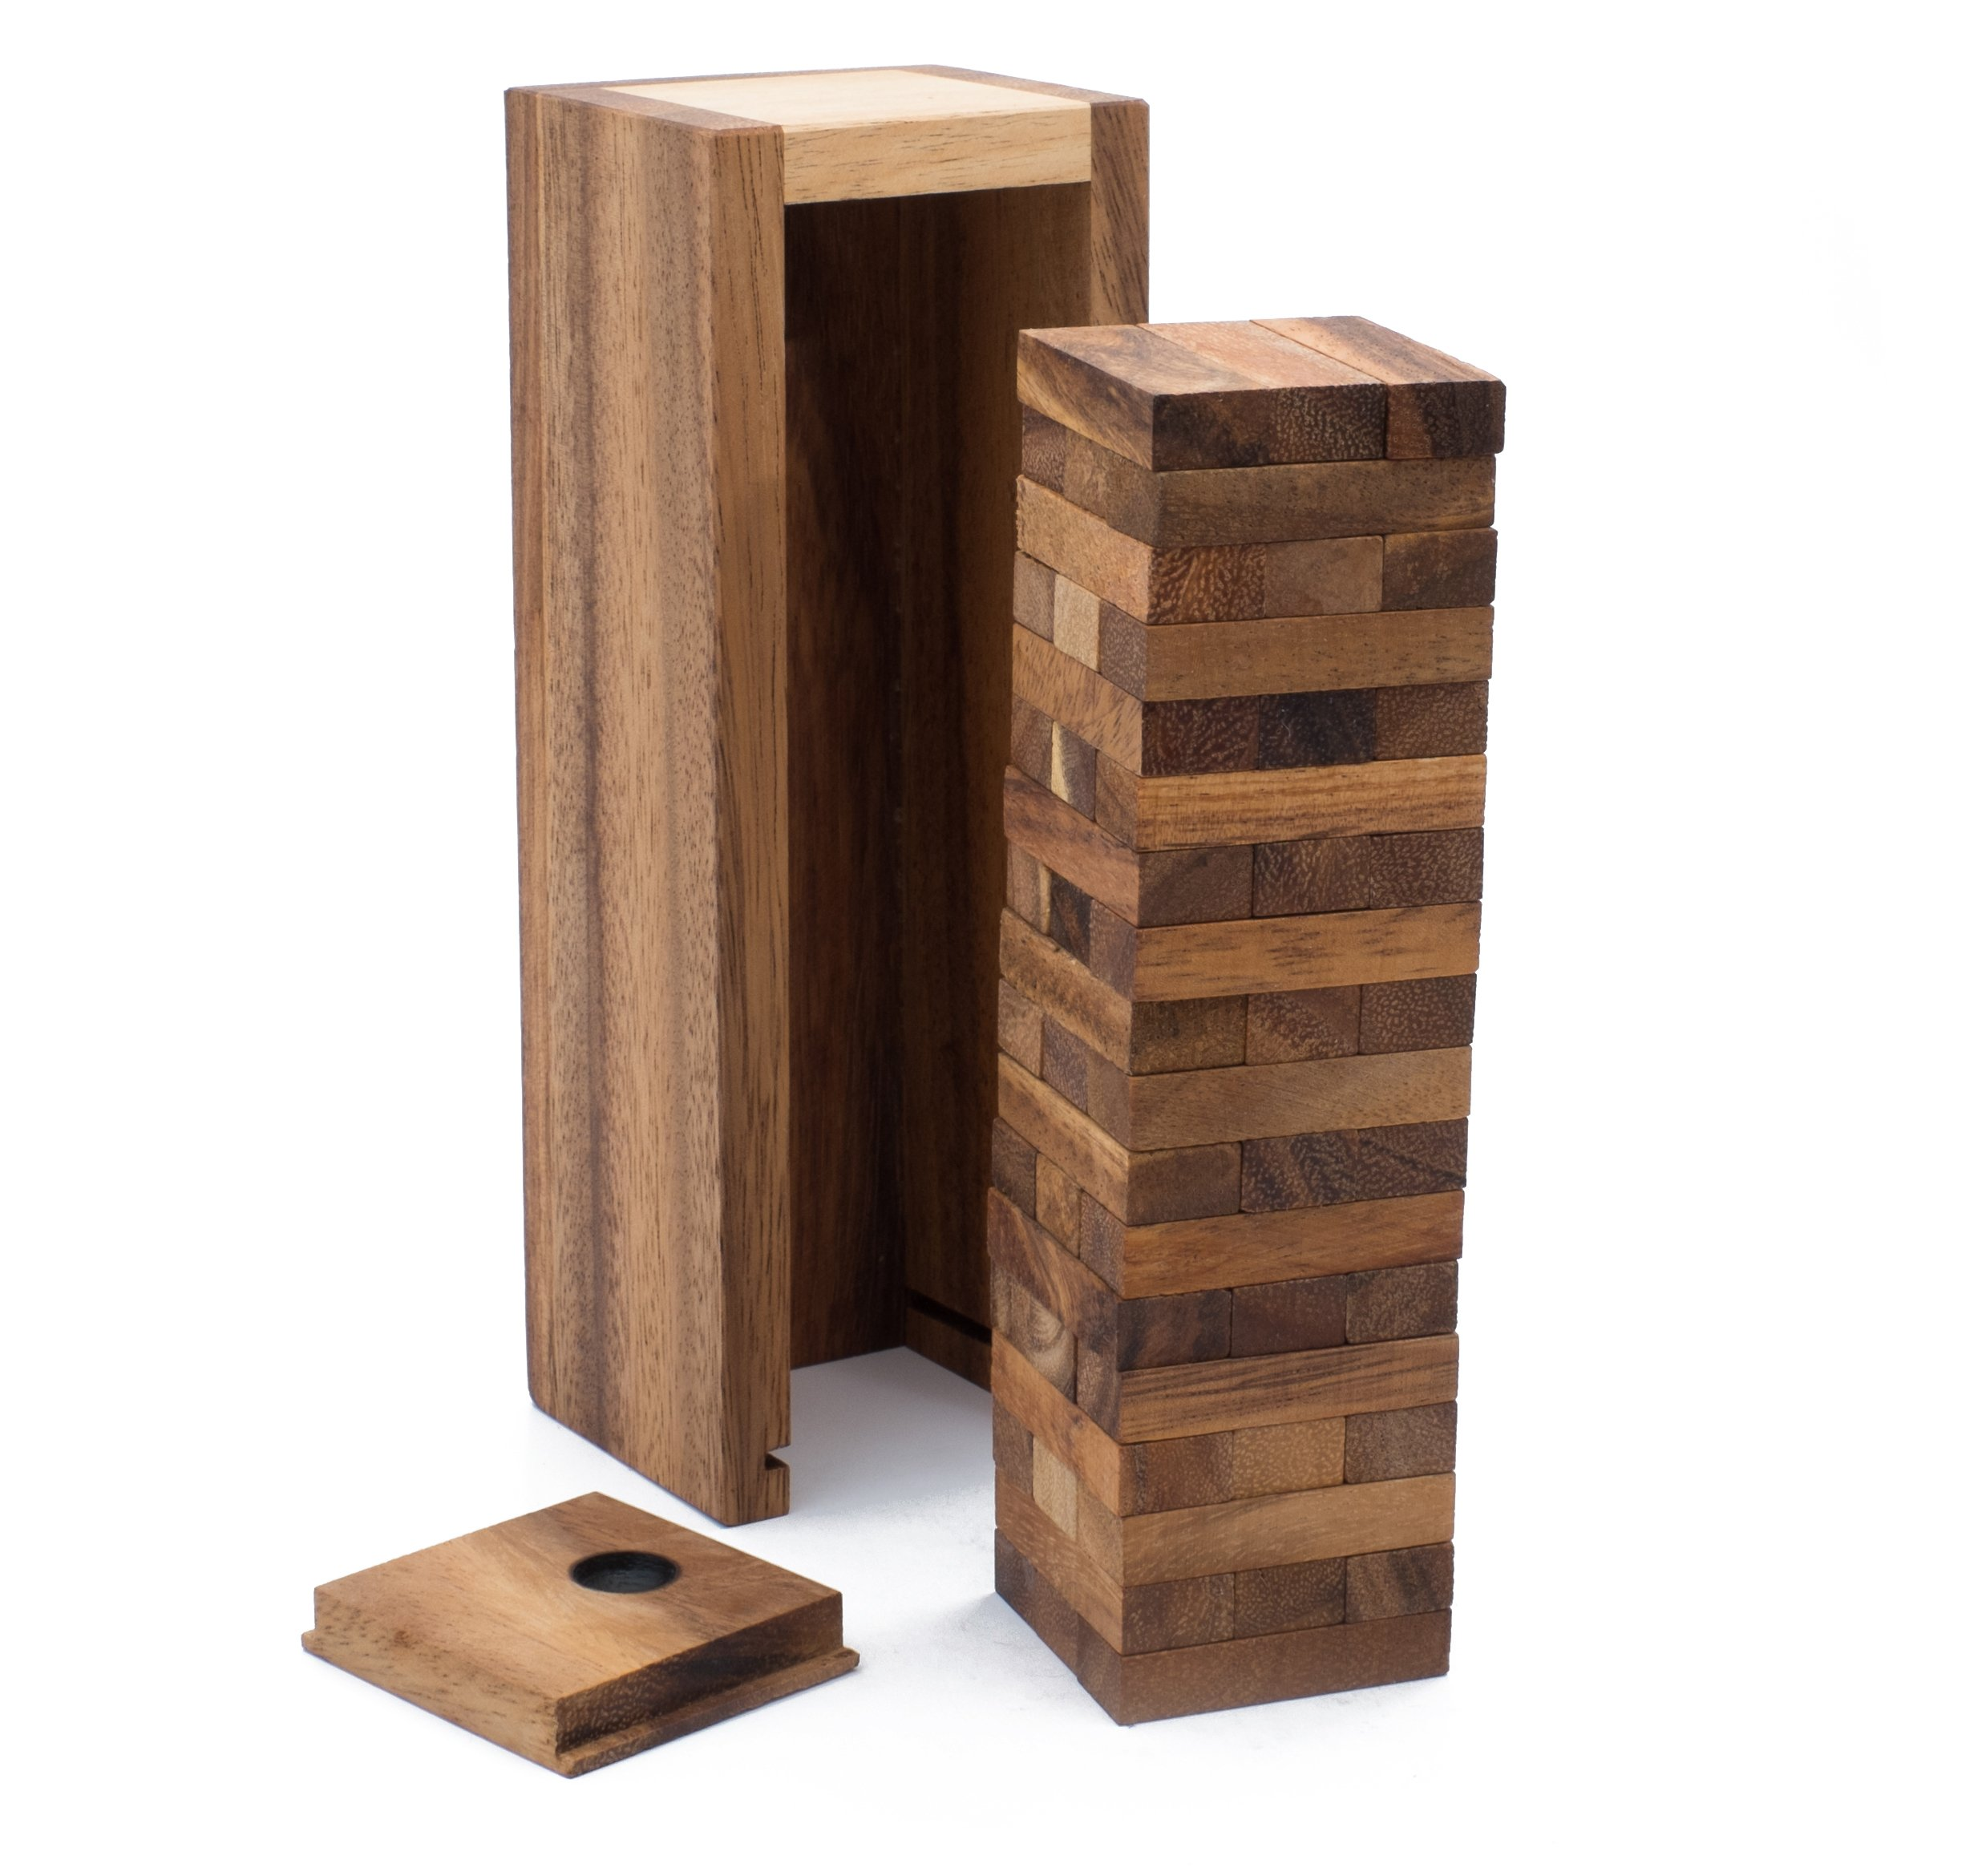 Wooden High Rise Condo: Tumbling Tower Stack Handmade & Organic Traditional Wood Game for Adults from SiamMandalay with SM Gift Box(Pictured)